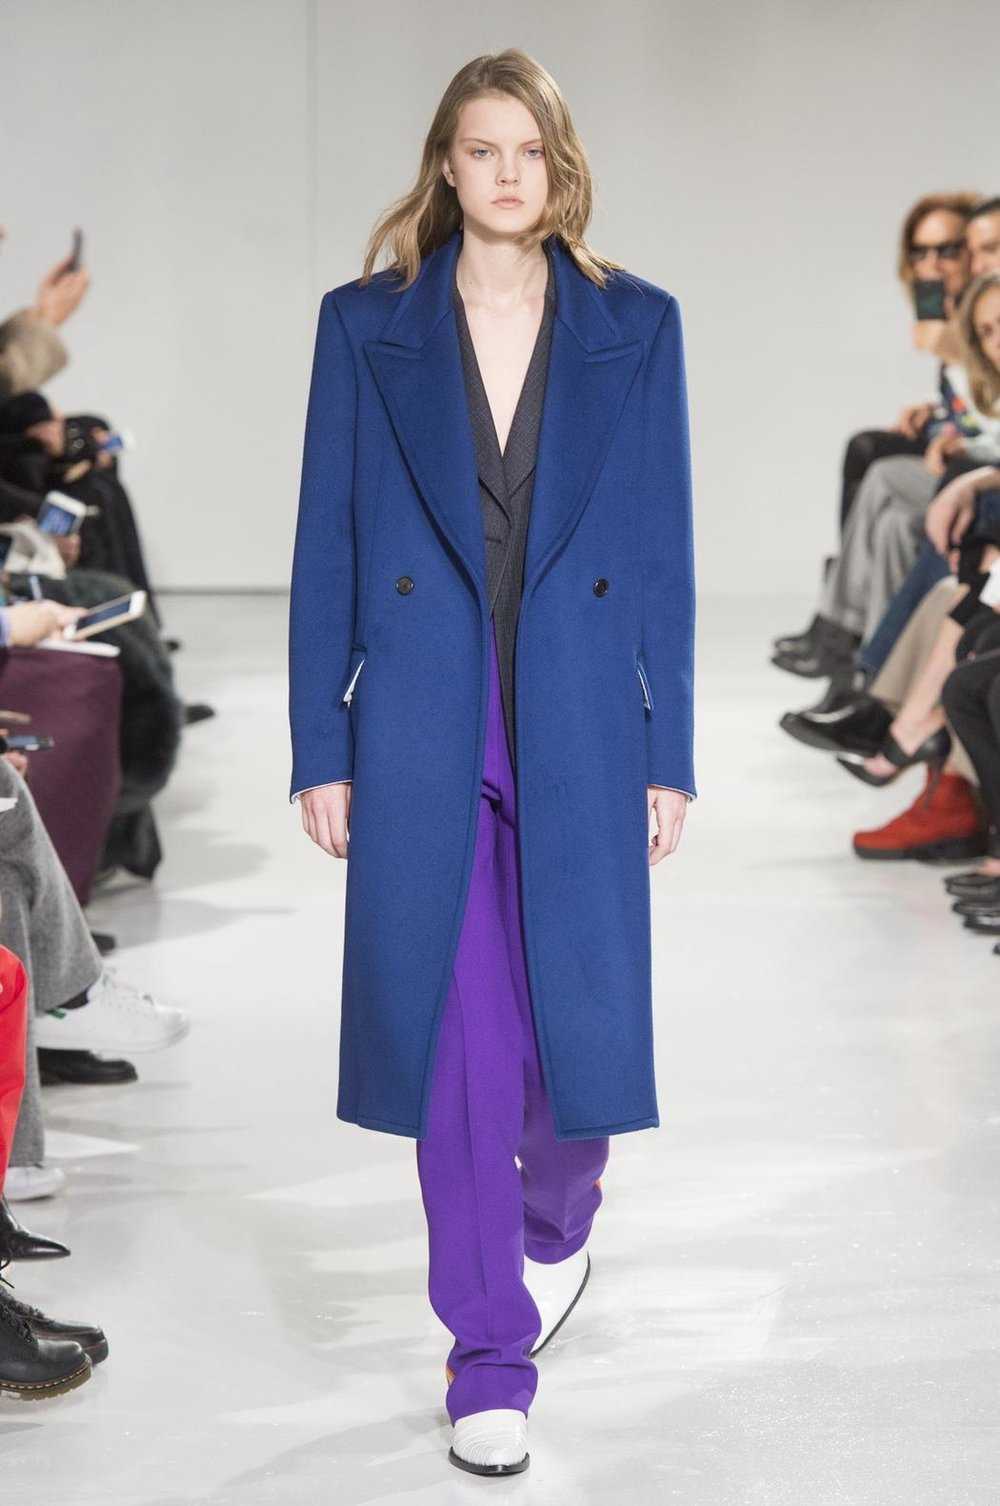 raf-simons-reimagines-america-for-calvin-klein-fallwinter-17-body-image-1486752460.jpg